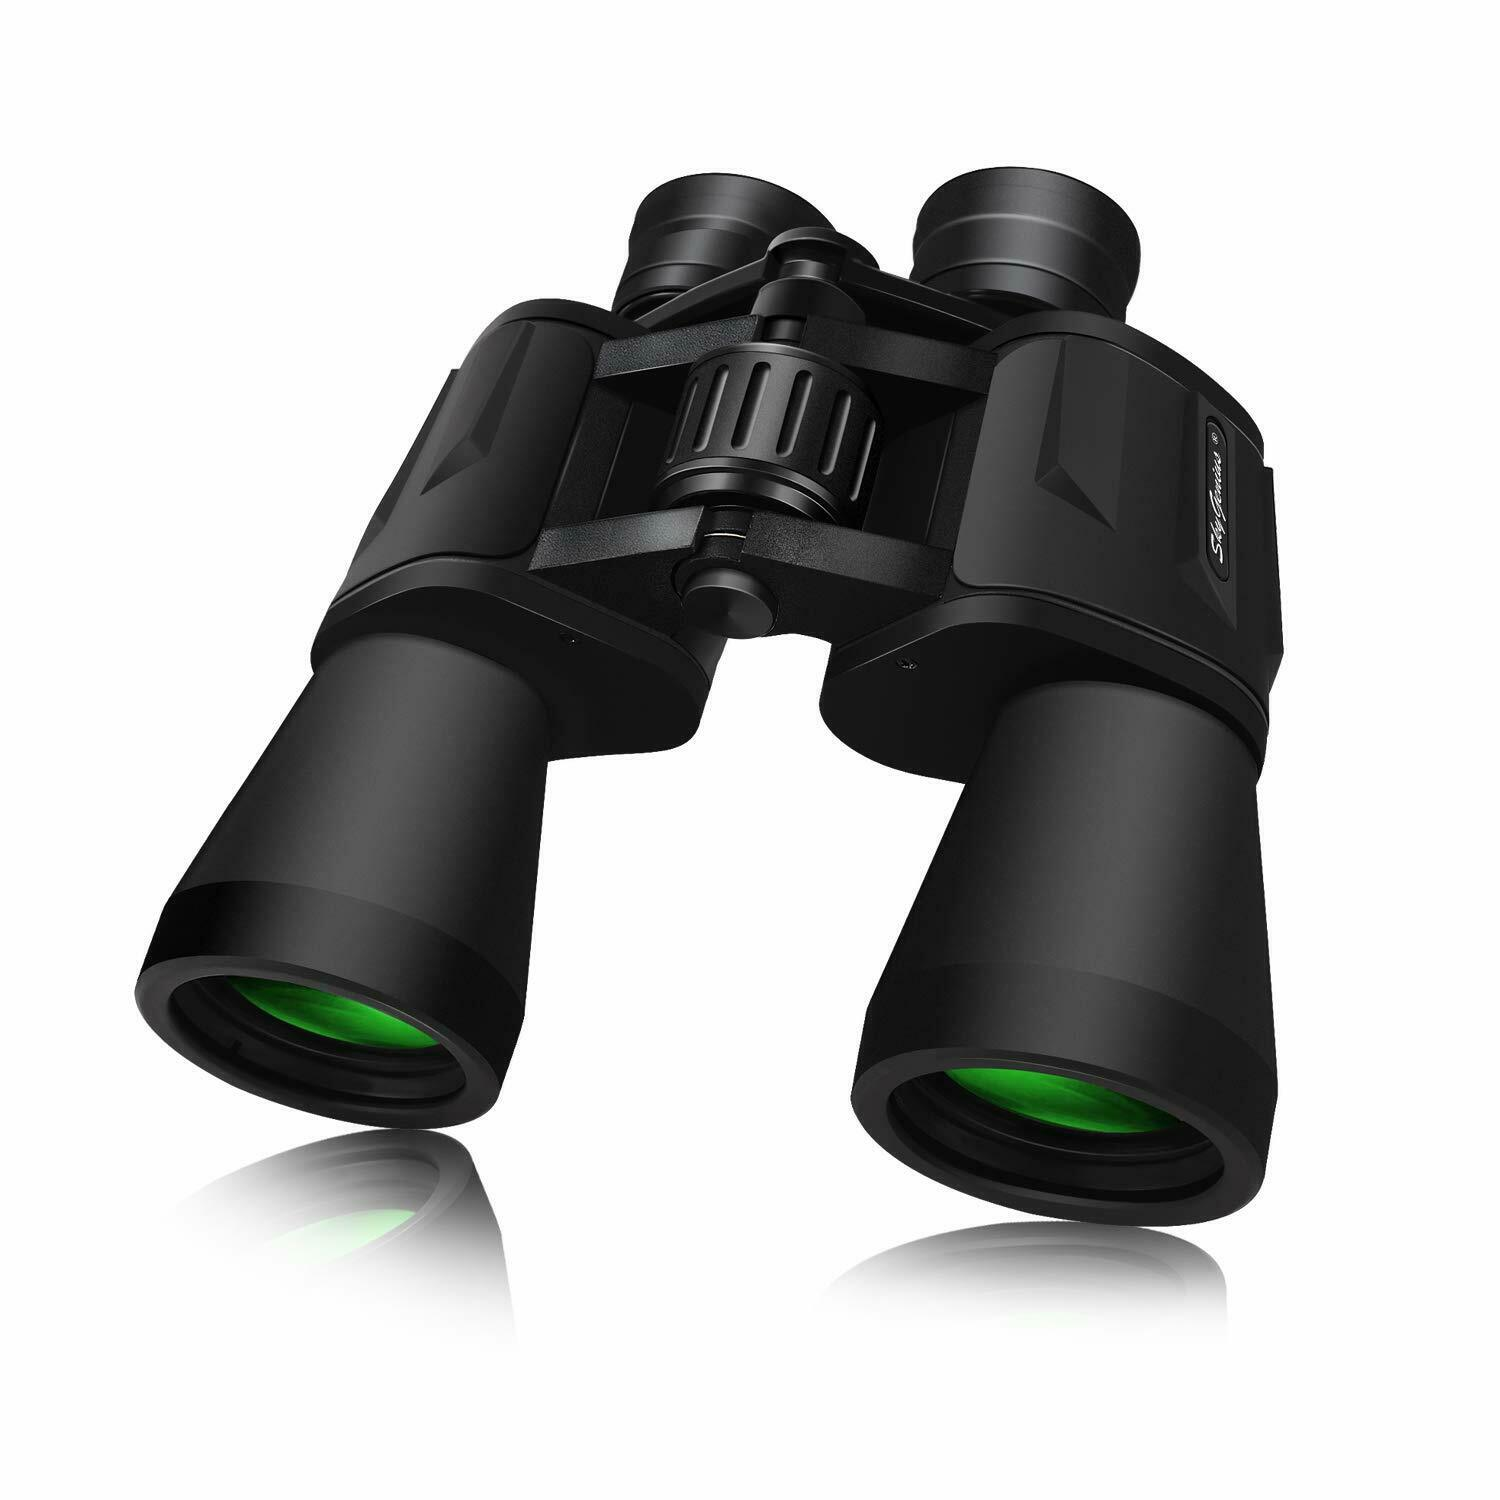 SHURUI 10x60 Binoculars for Adults Birdwatching Travel Sports Games Large Visual Range Waterproof Outdoor Sports with Strap Carrying Bag HD Binoculars for Kids with Low Light Night Vision